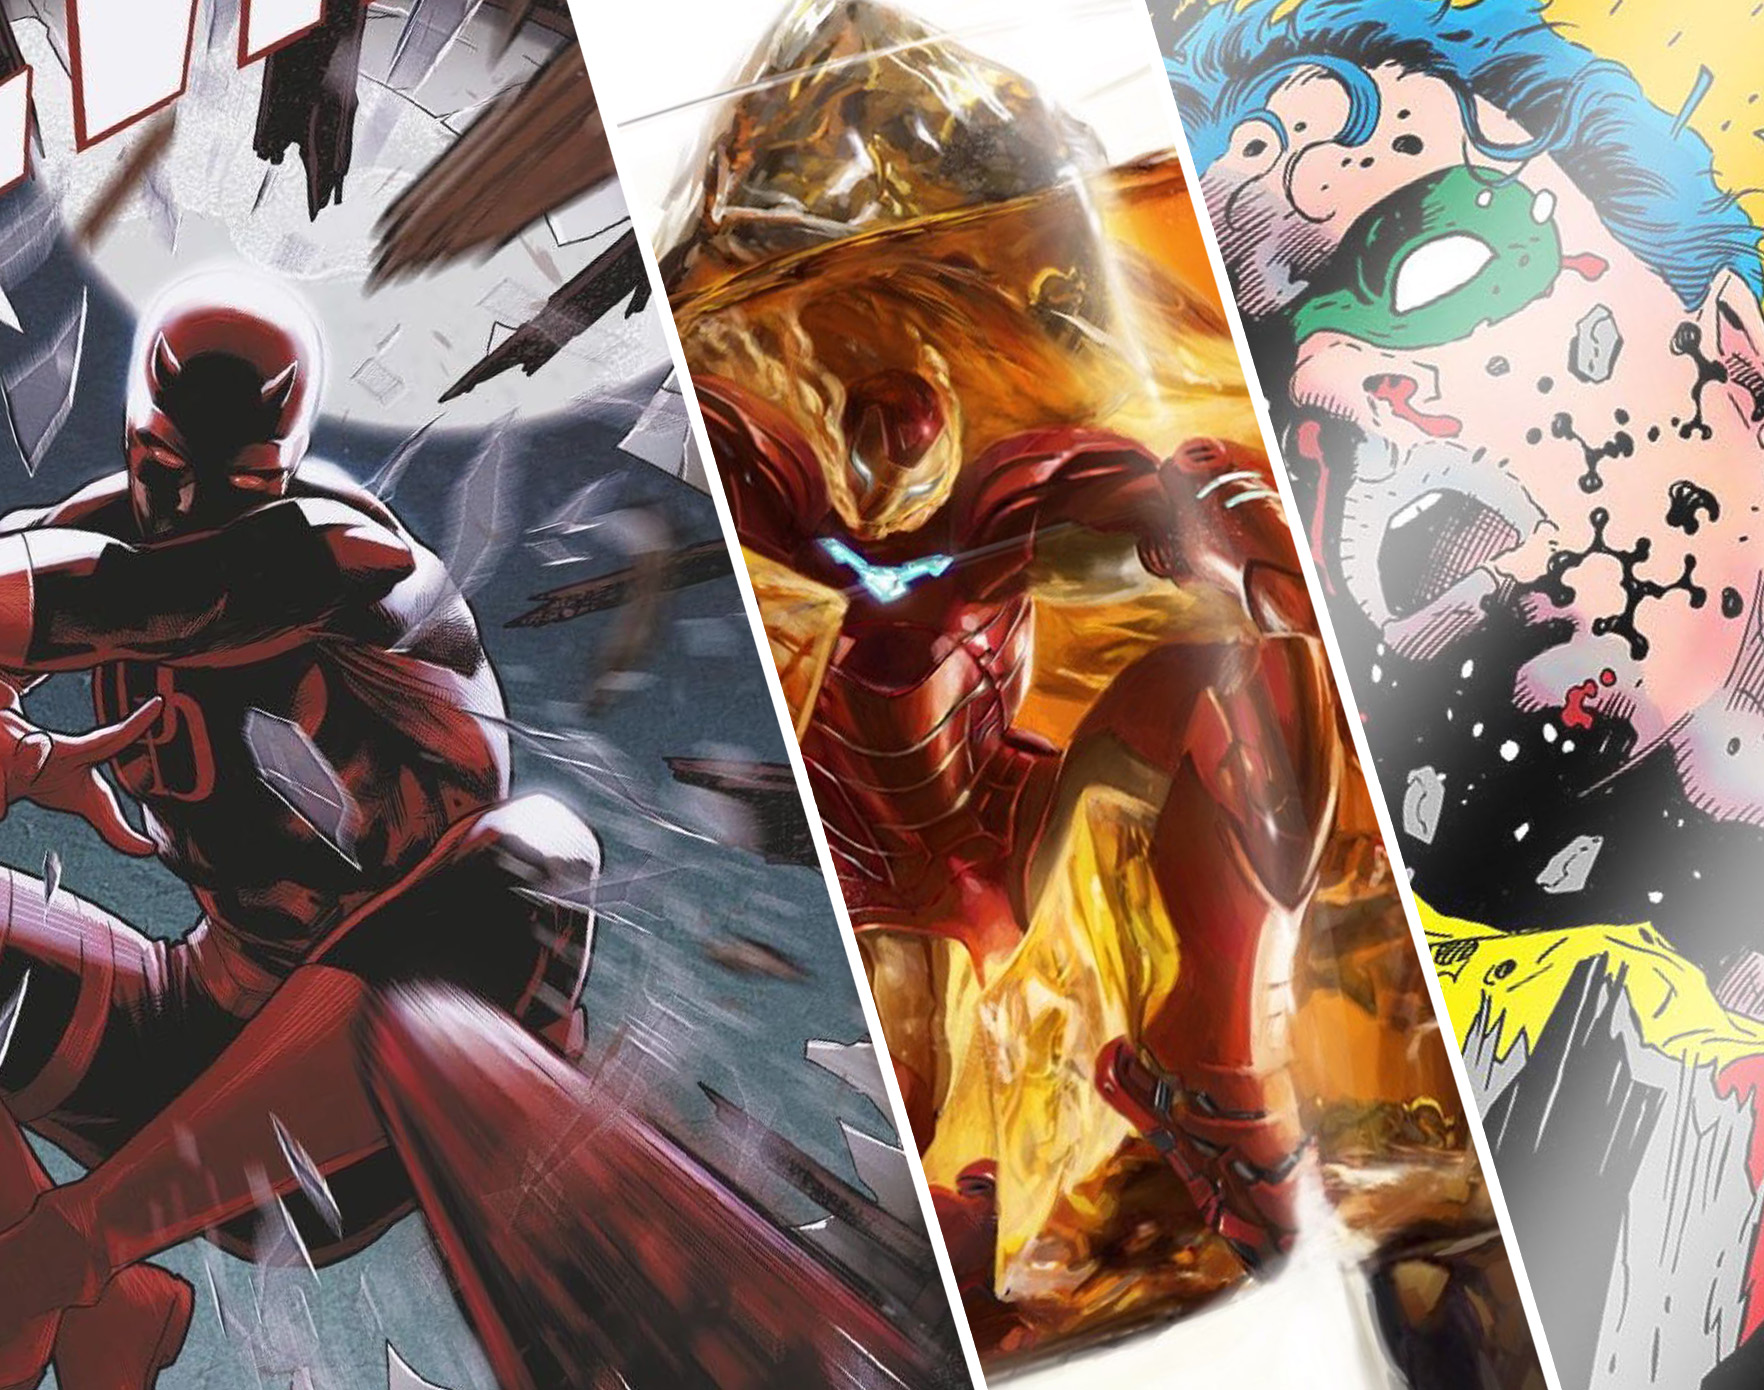 Latest comics news and discussion about the best comics each week.